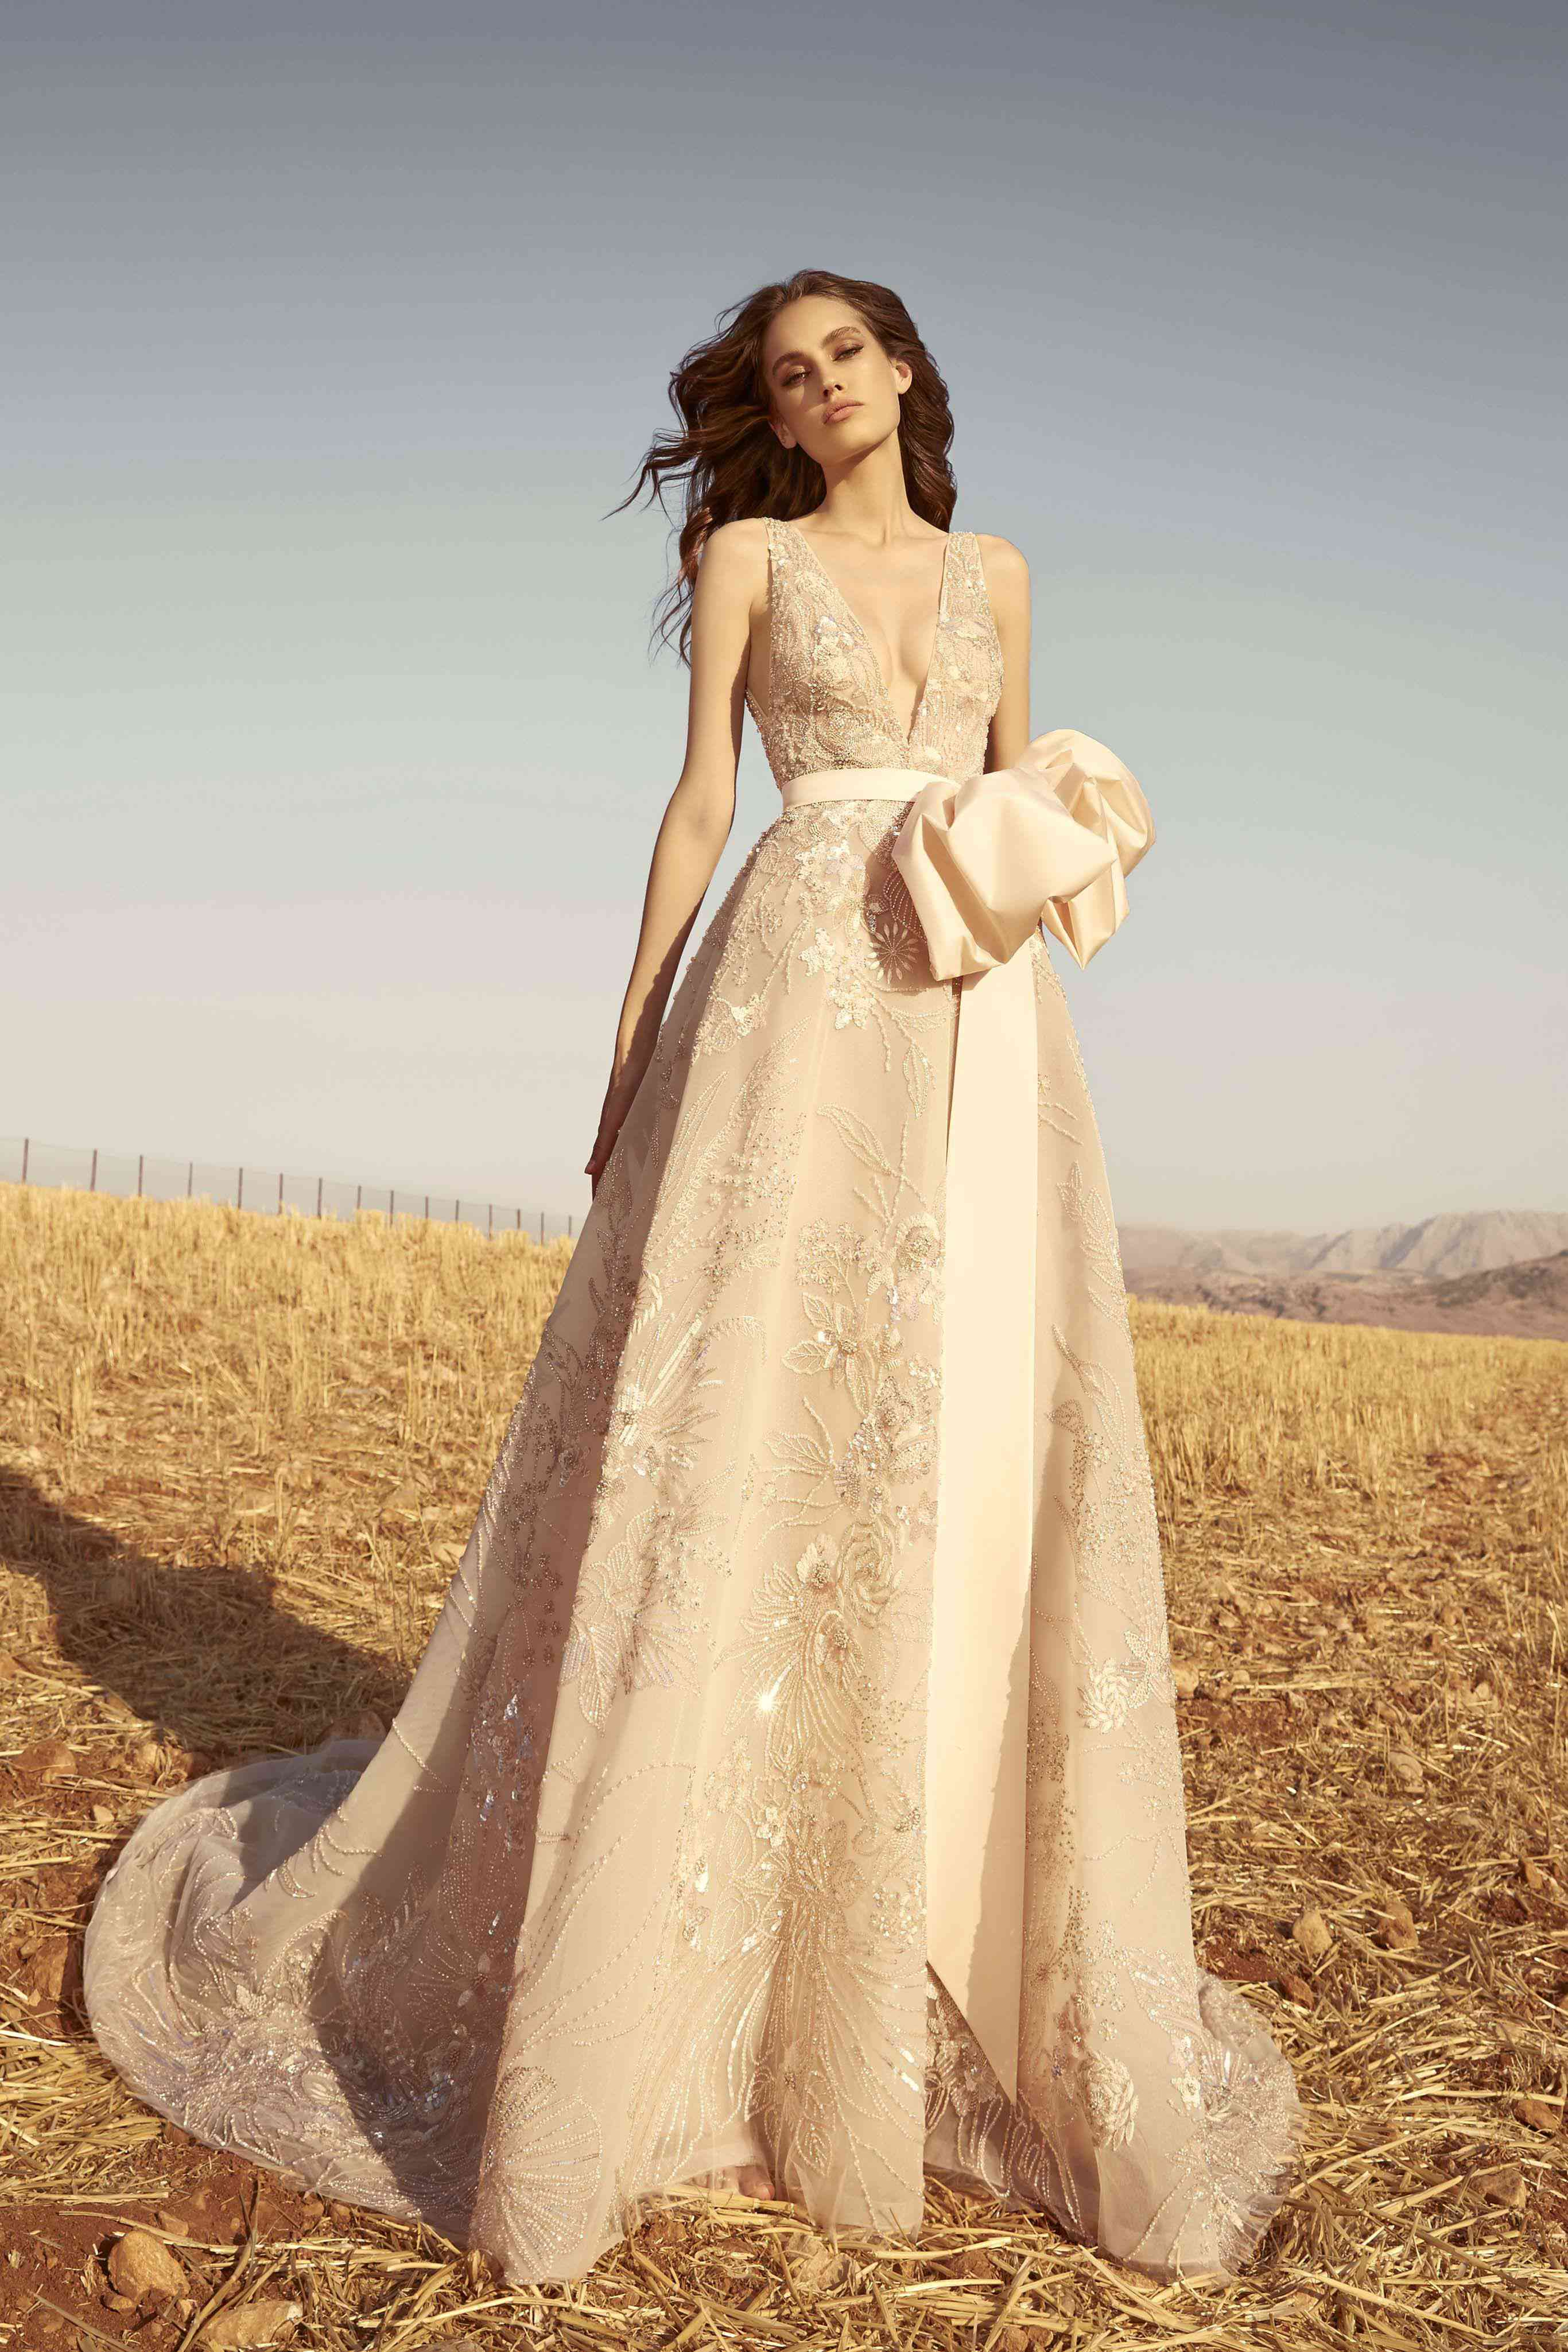 Model in a fully embroidered shell tulle dress with taffeta belt bow and plunging neckline